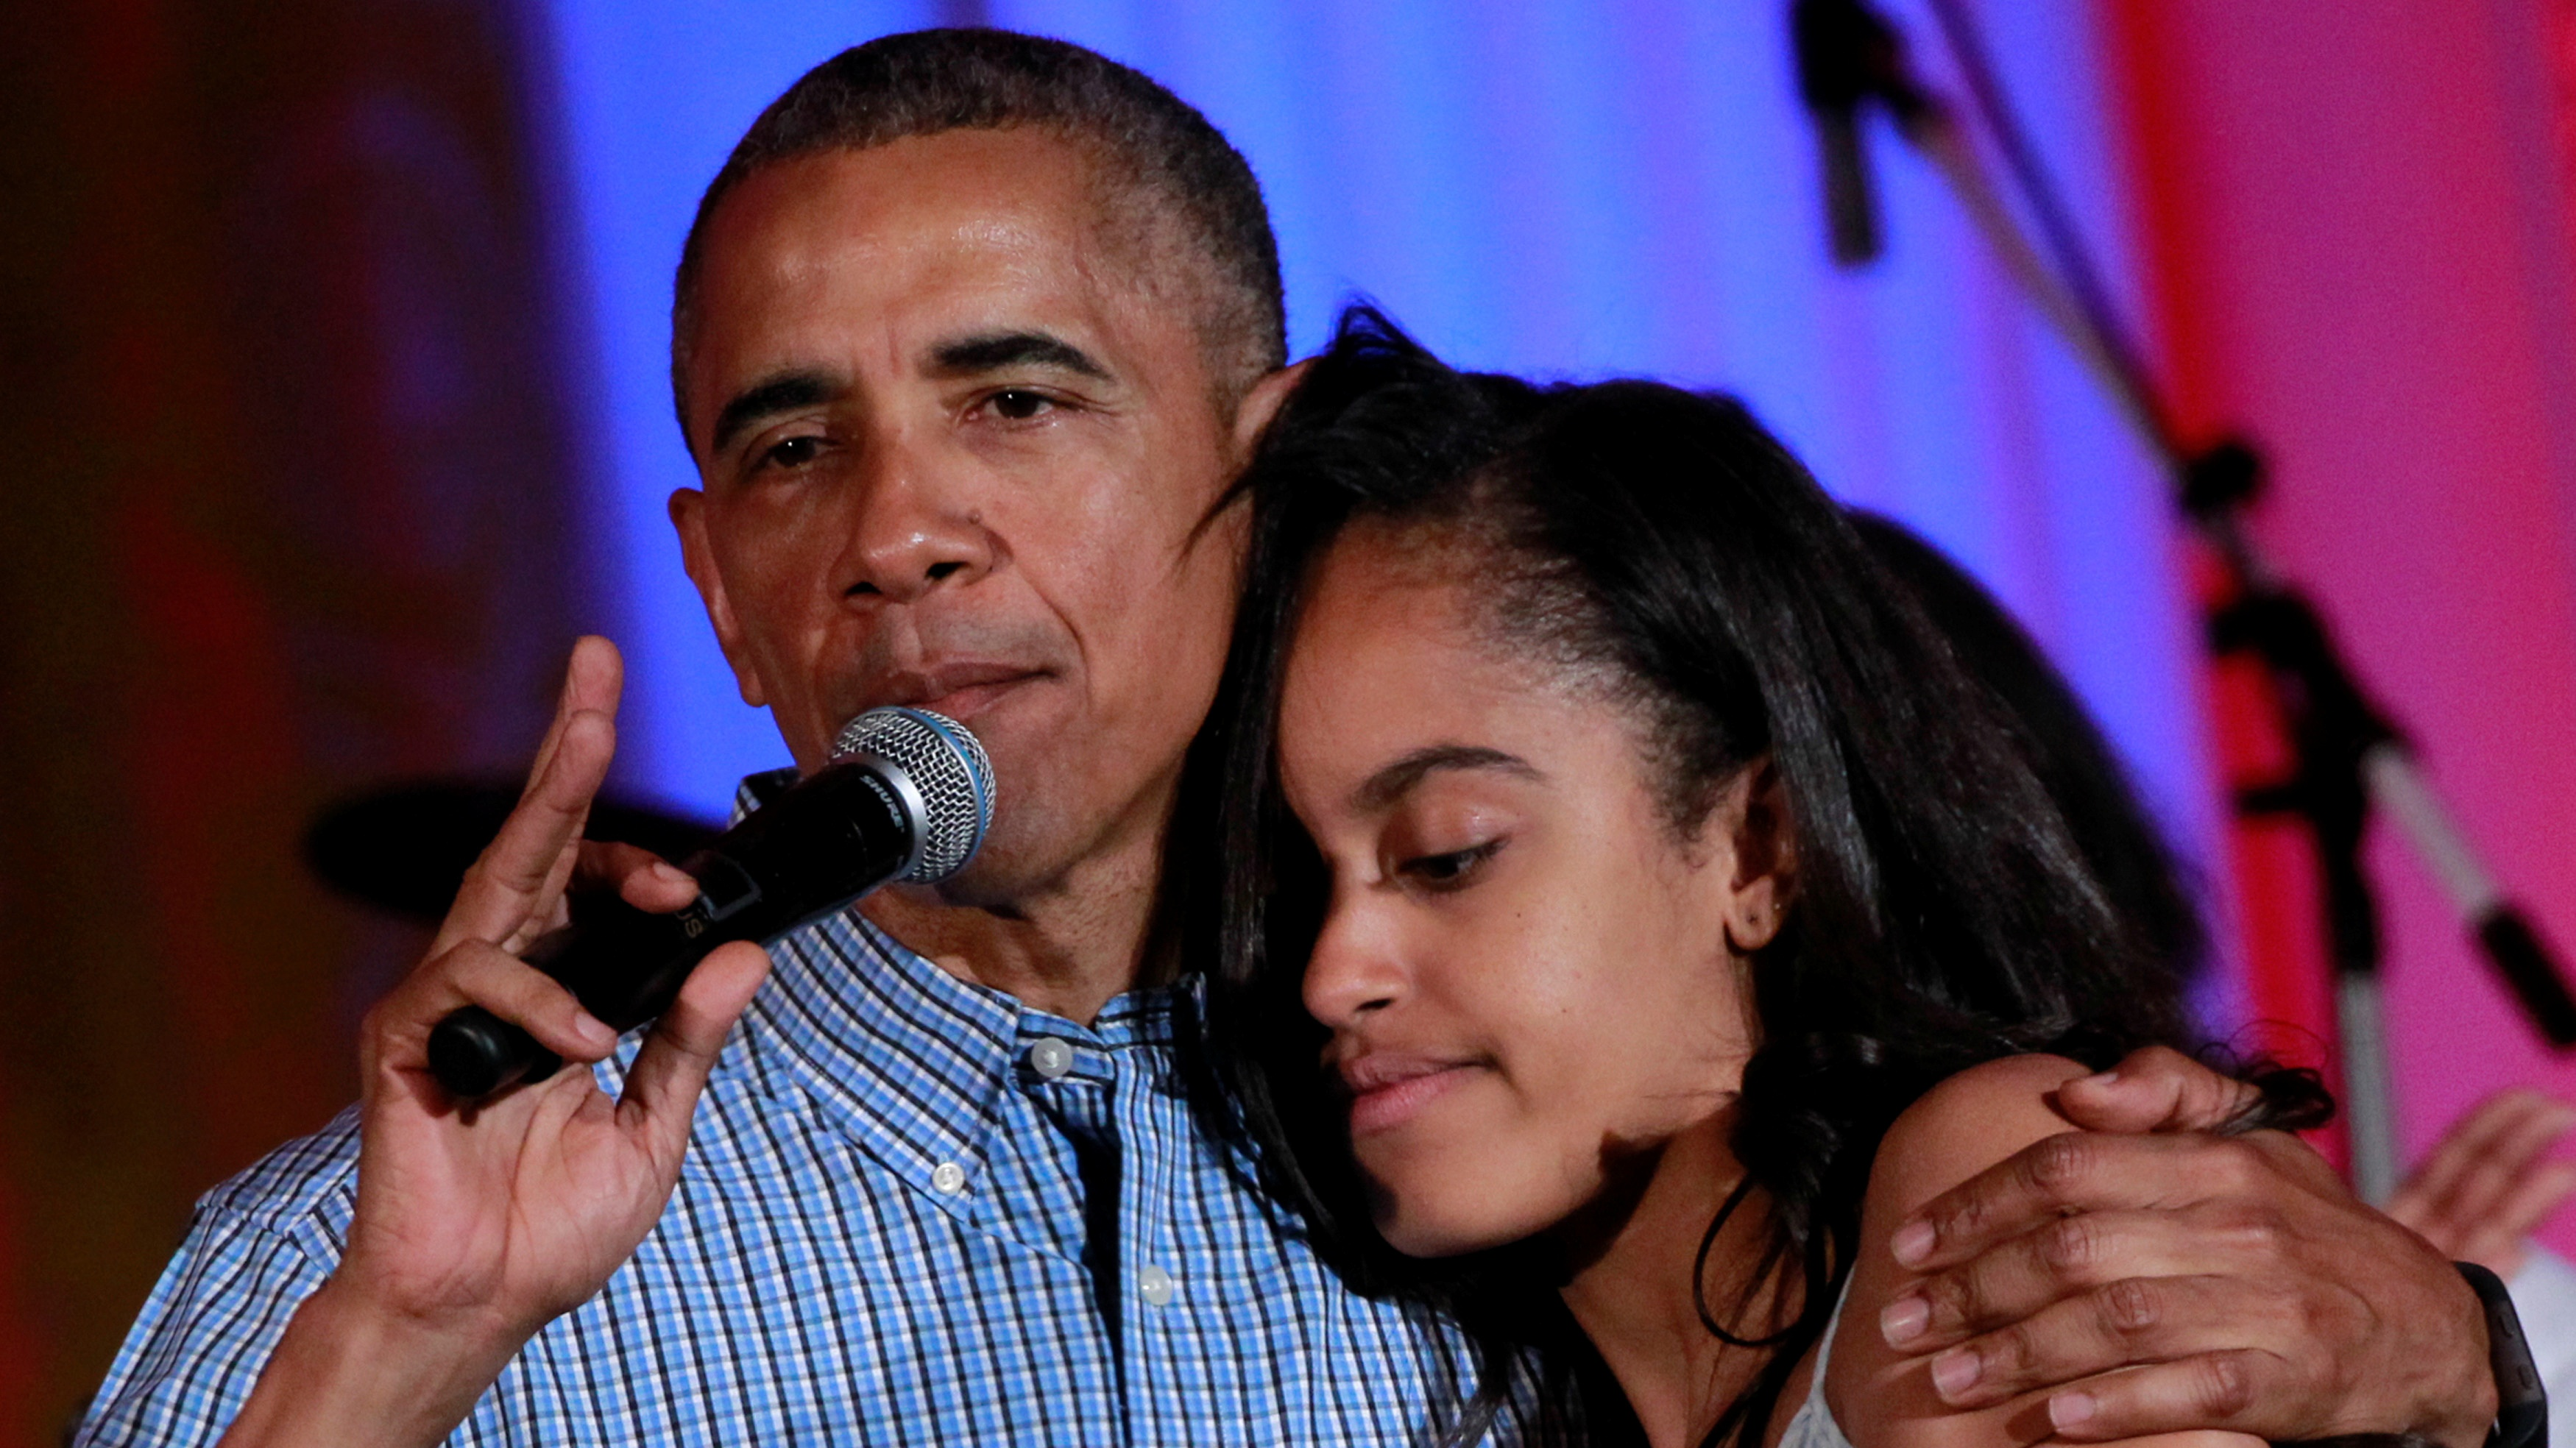 U.S. President Barack Obama congratulates his daughter Malia on her birthday during the Independence Day celebration at the White House in Washington U.S., July 4, 2016. REUTERS/Yuri Gripas